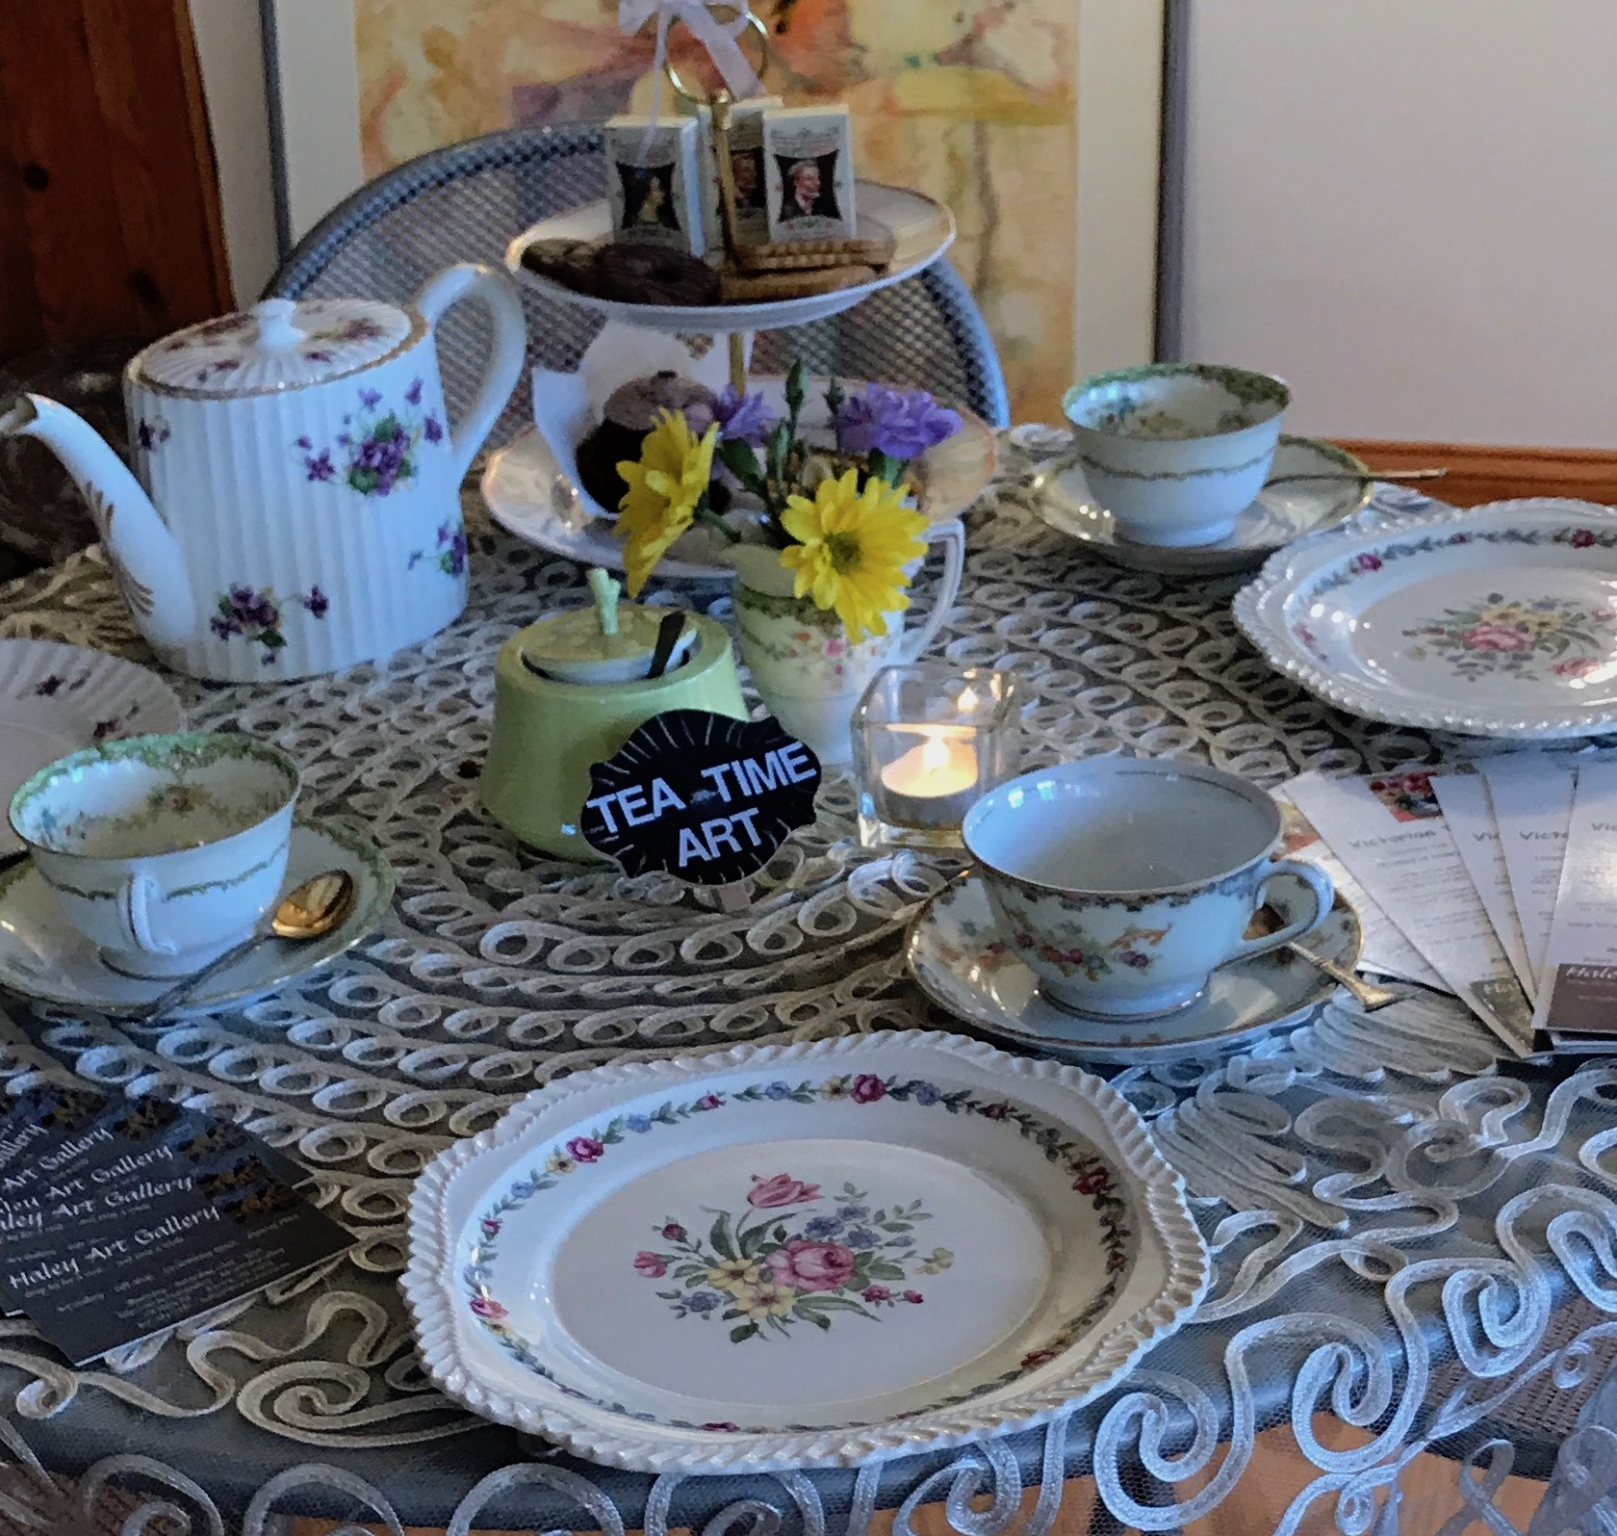 Victorian Tea-Time Art